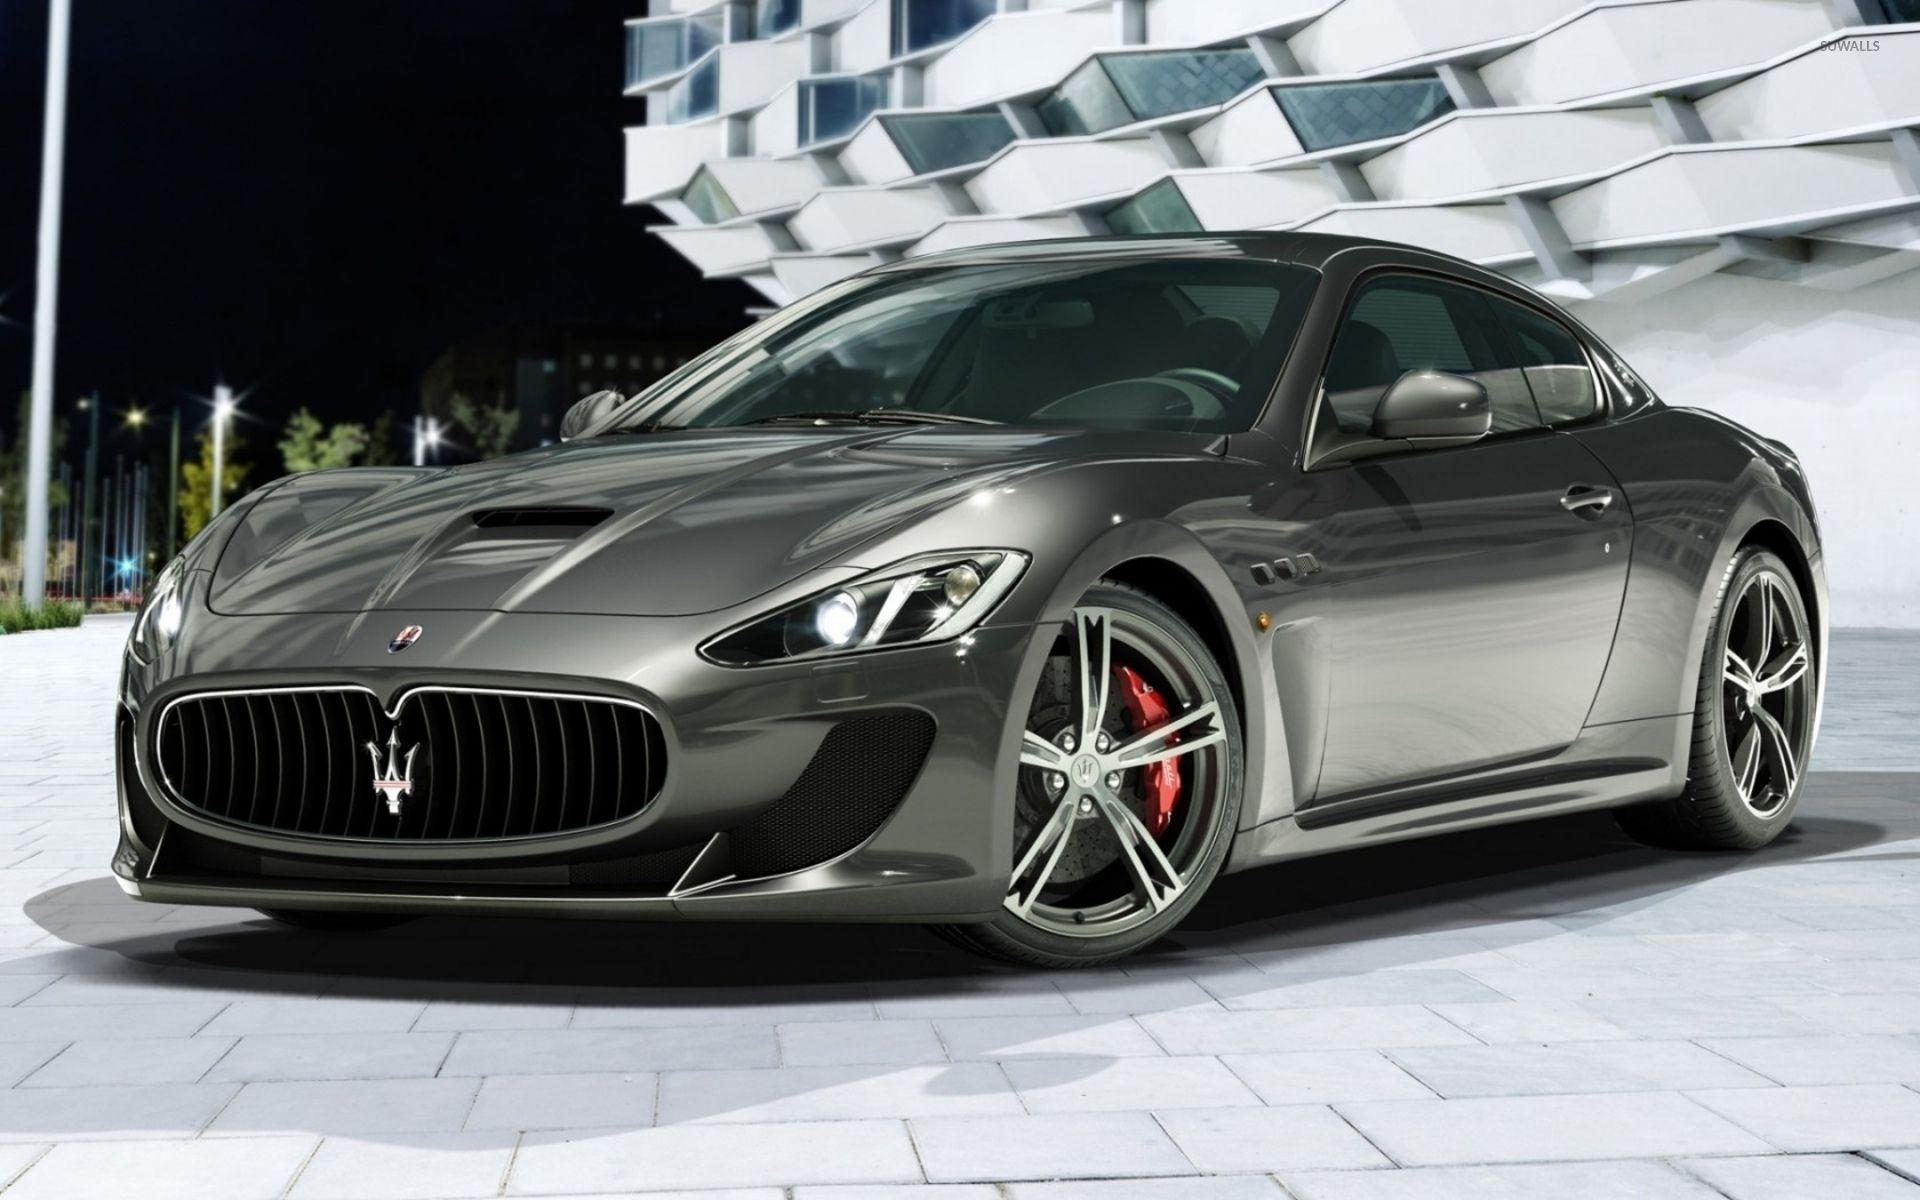 Orange Maserati Quattroporte wallpaper - Car wallpapers - #49281